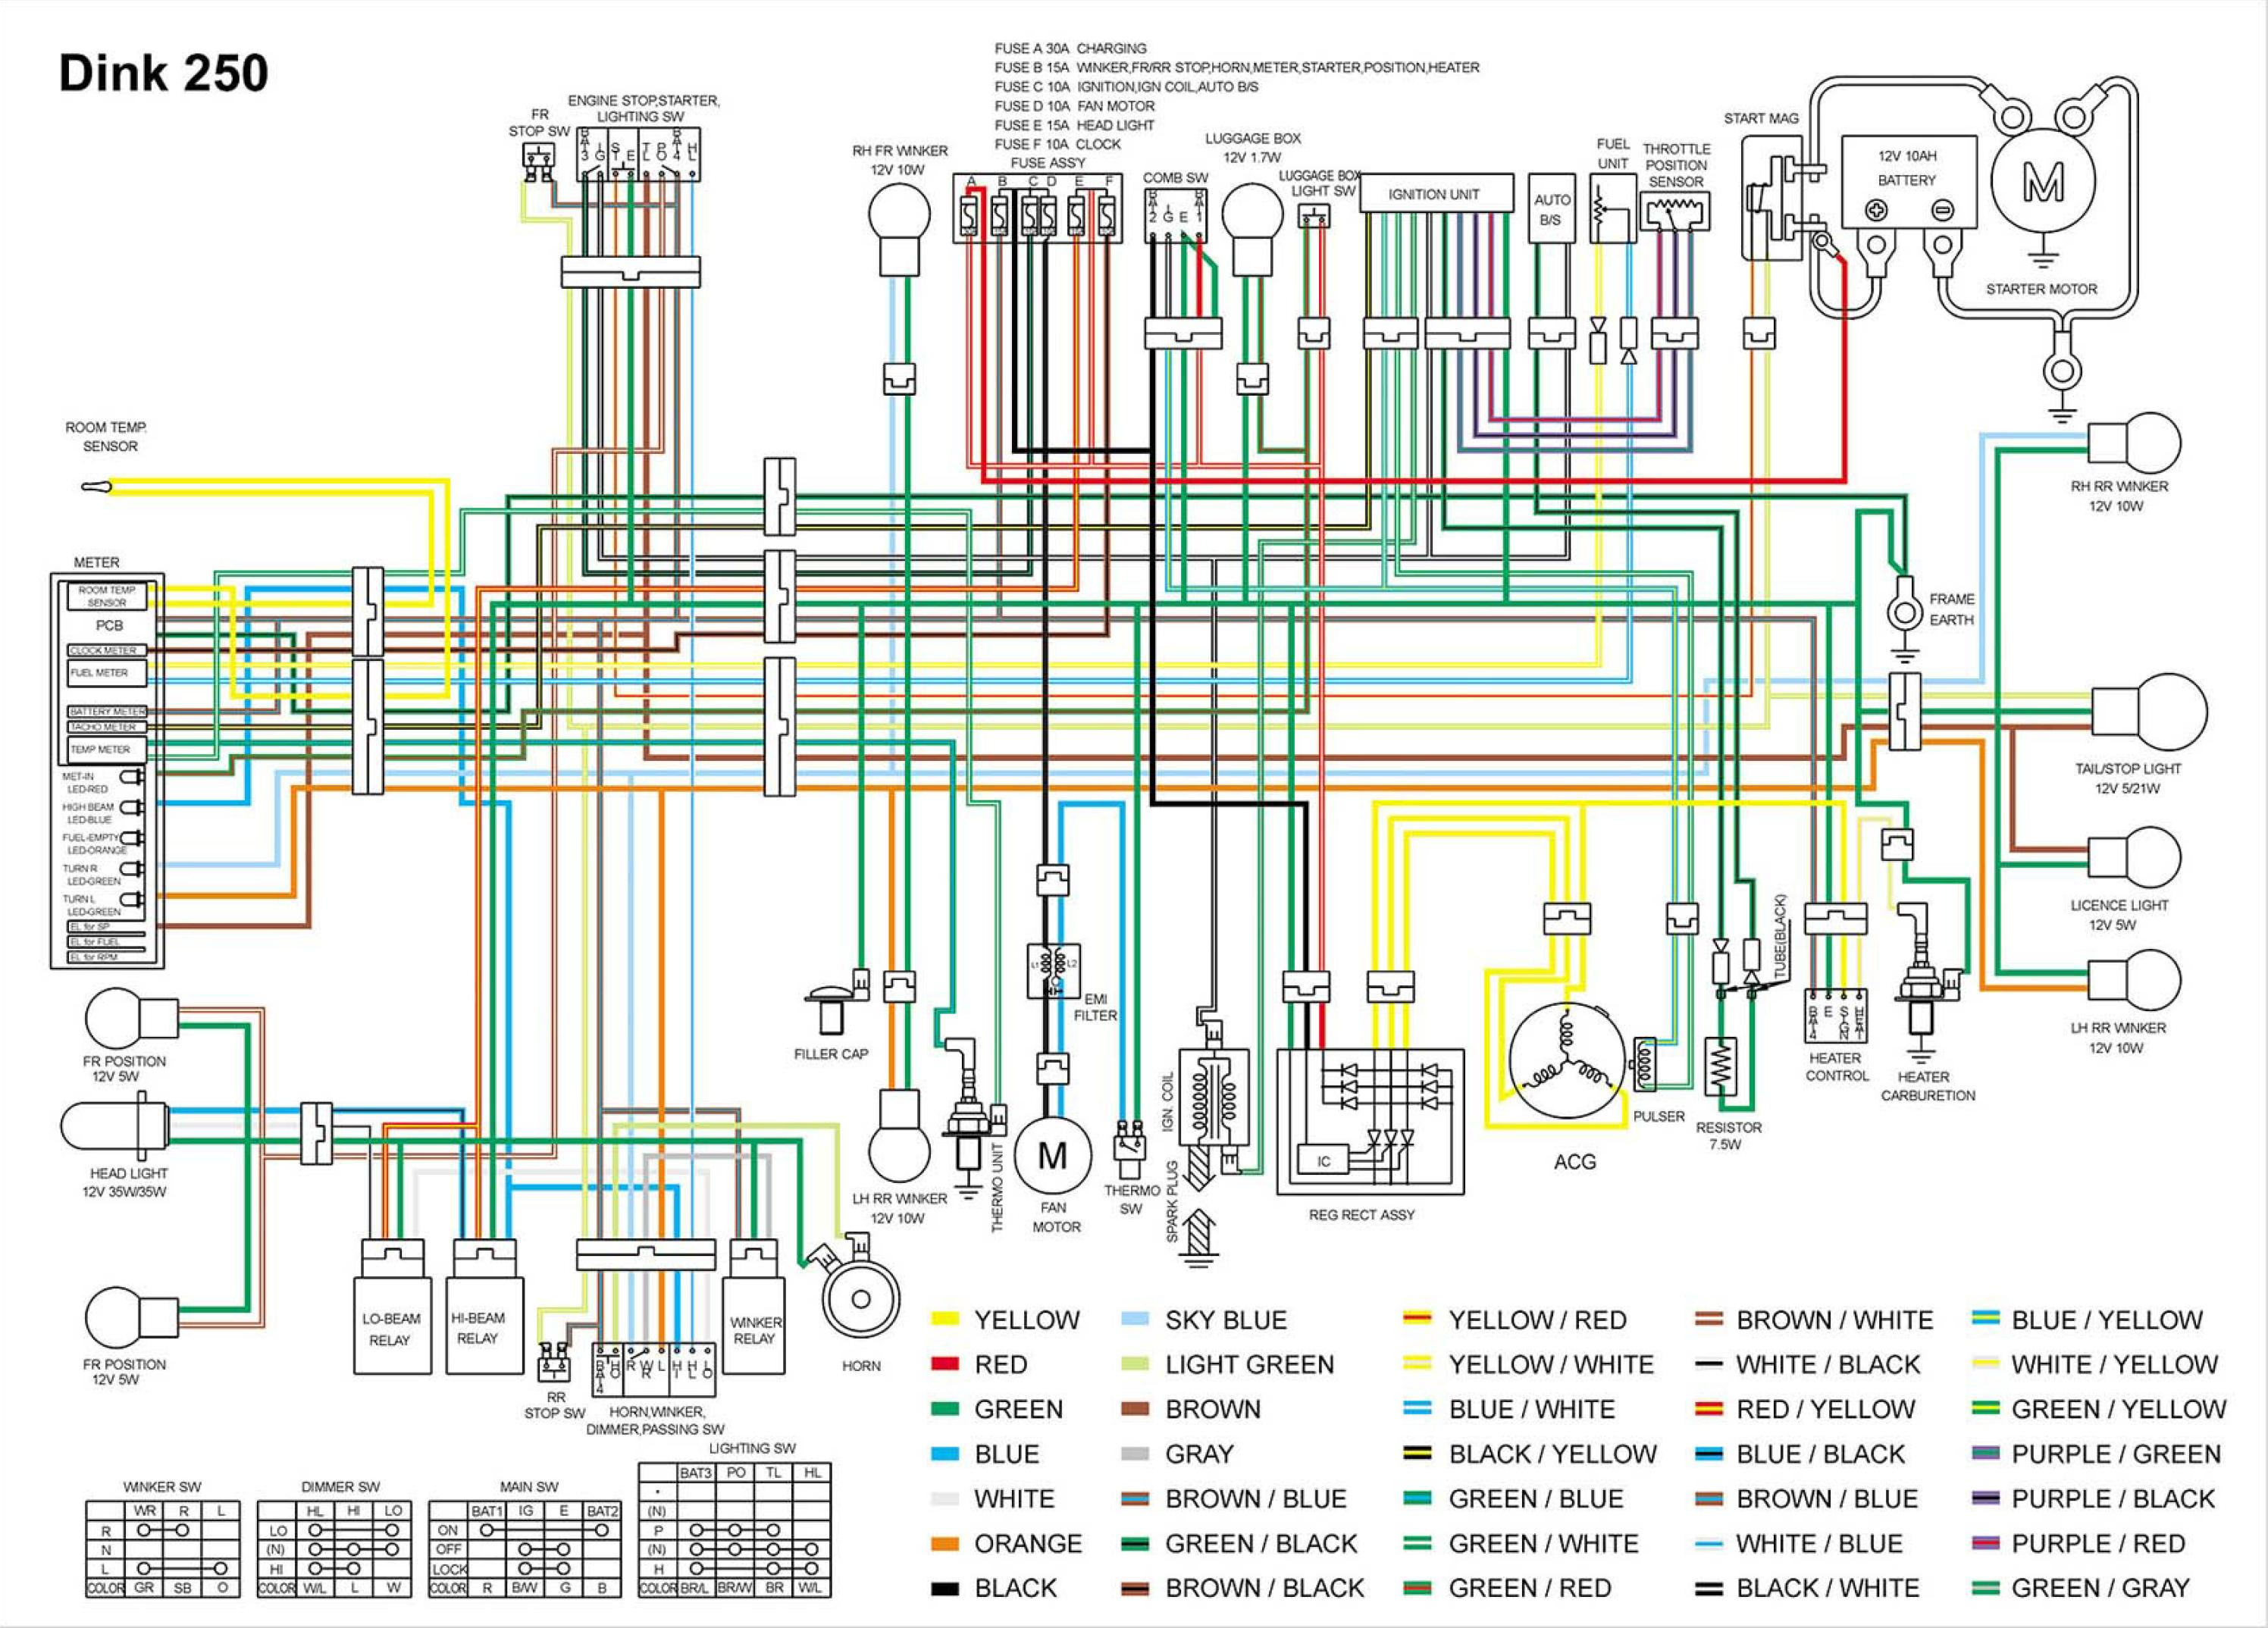 Viva 150cc Wiring Diagram Reinvent Your Scooter Cdi Chinese Dunebuggy 250cc Gy6 Engine No For Page 3 And Schematics Rh Rivcas Org